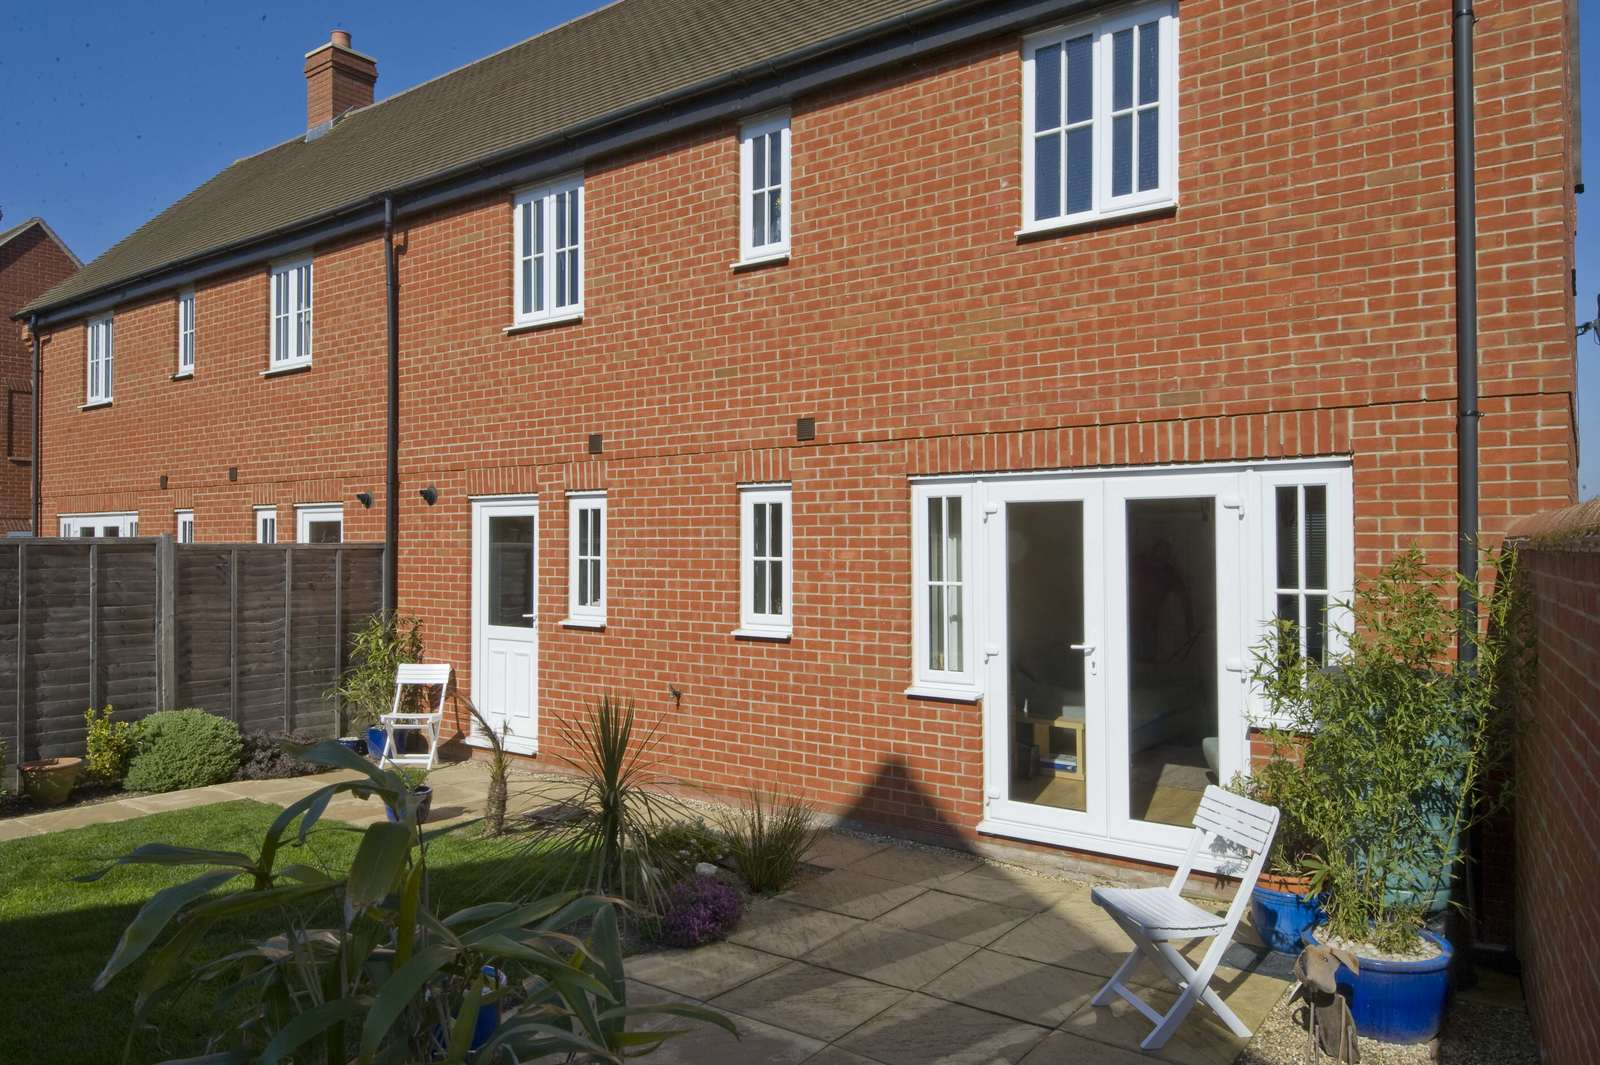 3 bed house for sale in Woodpecker Close, Great Barford 6